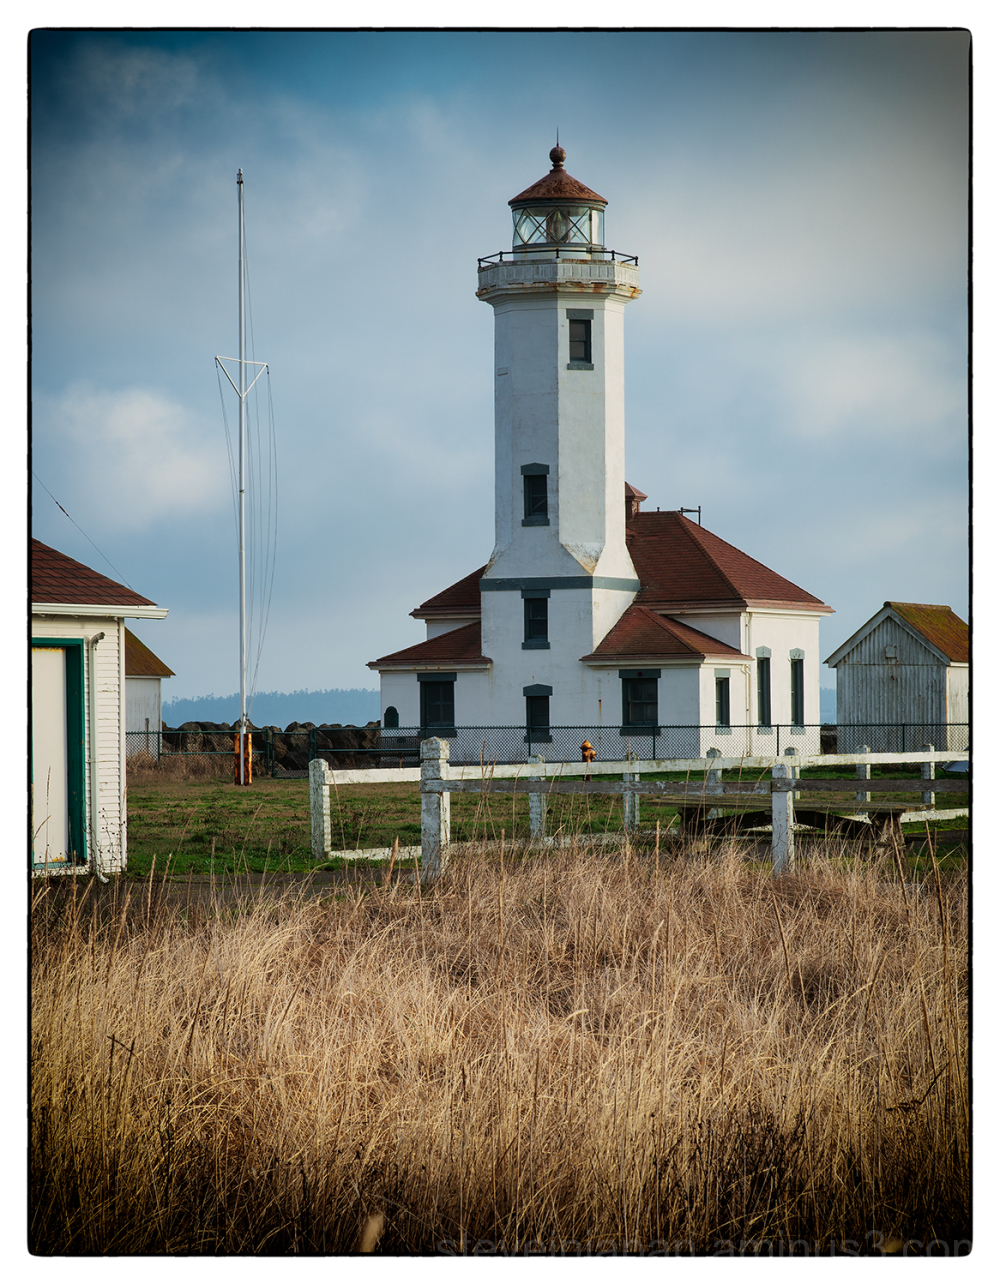 The Point Wilson lighthouse in Port Townsend, WA.